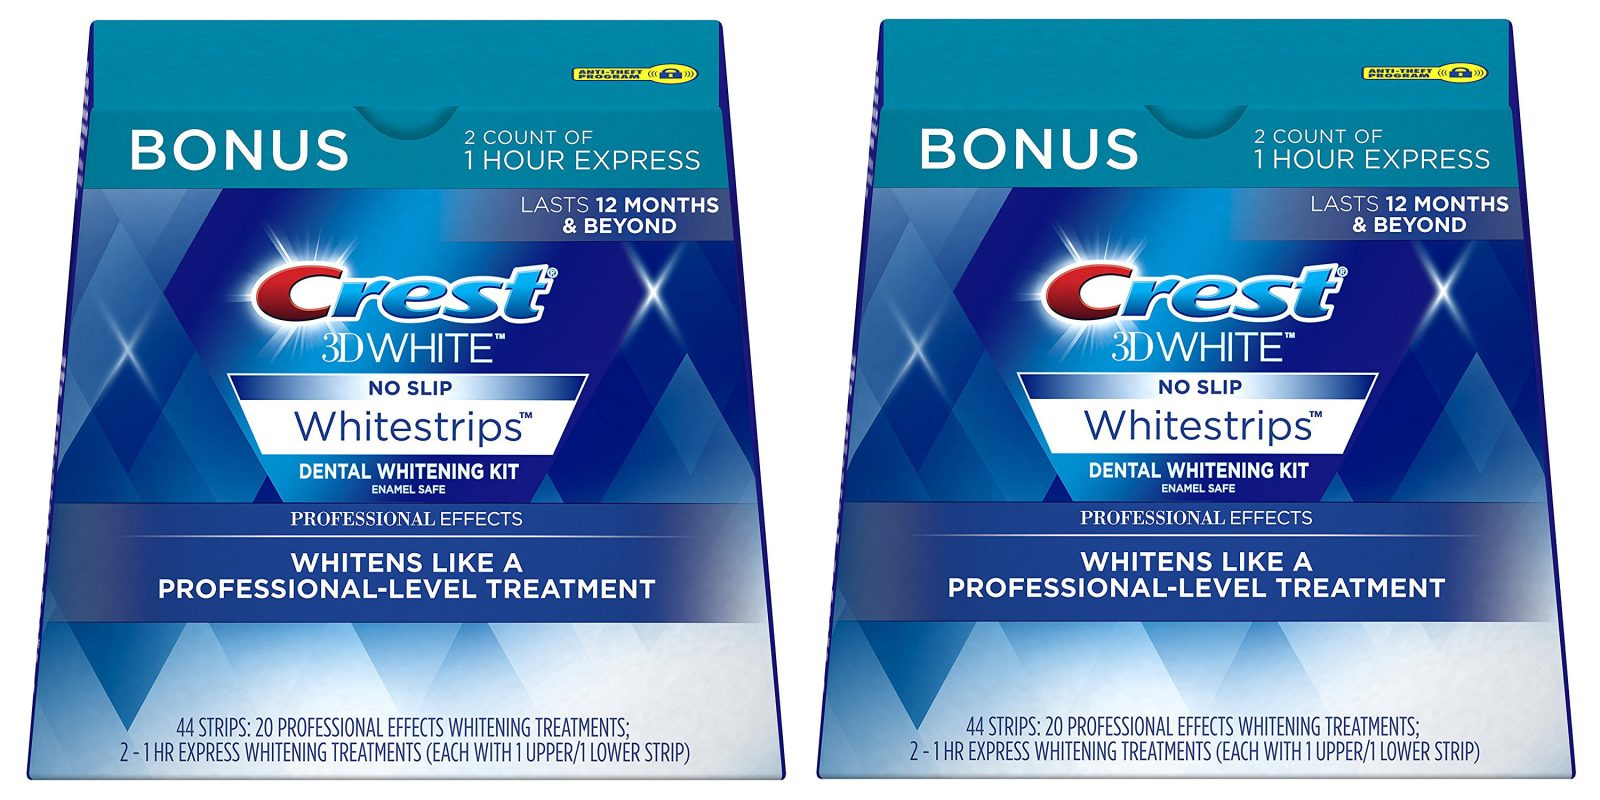 Huge Deal On Crest 3d Whitestrips 22 Treatments For Just 15